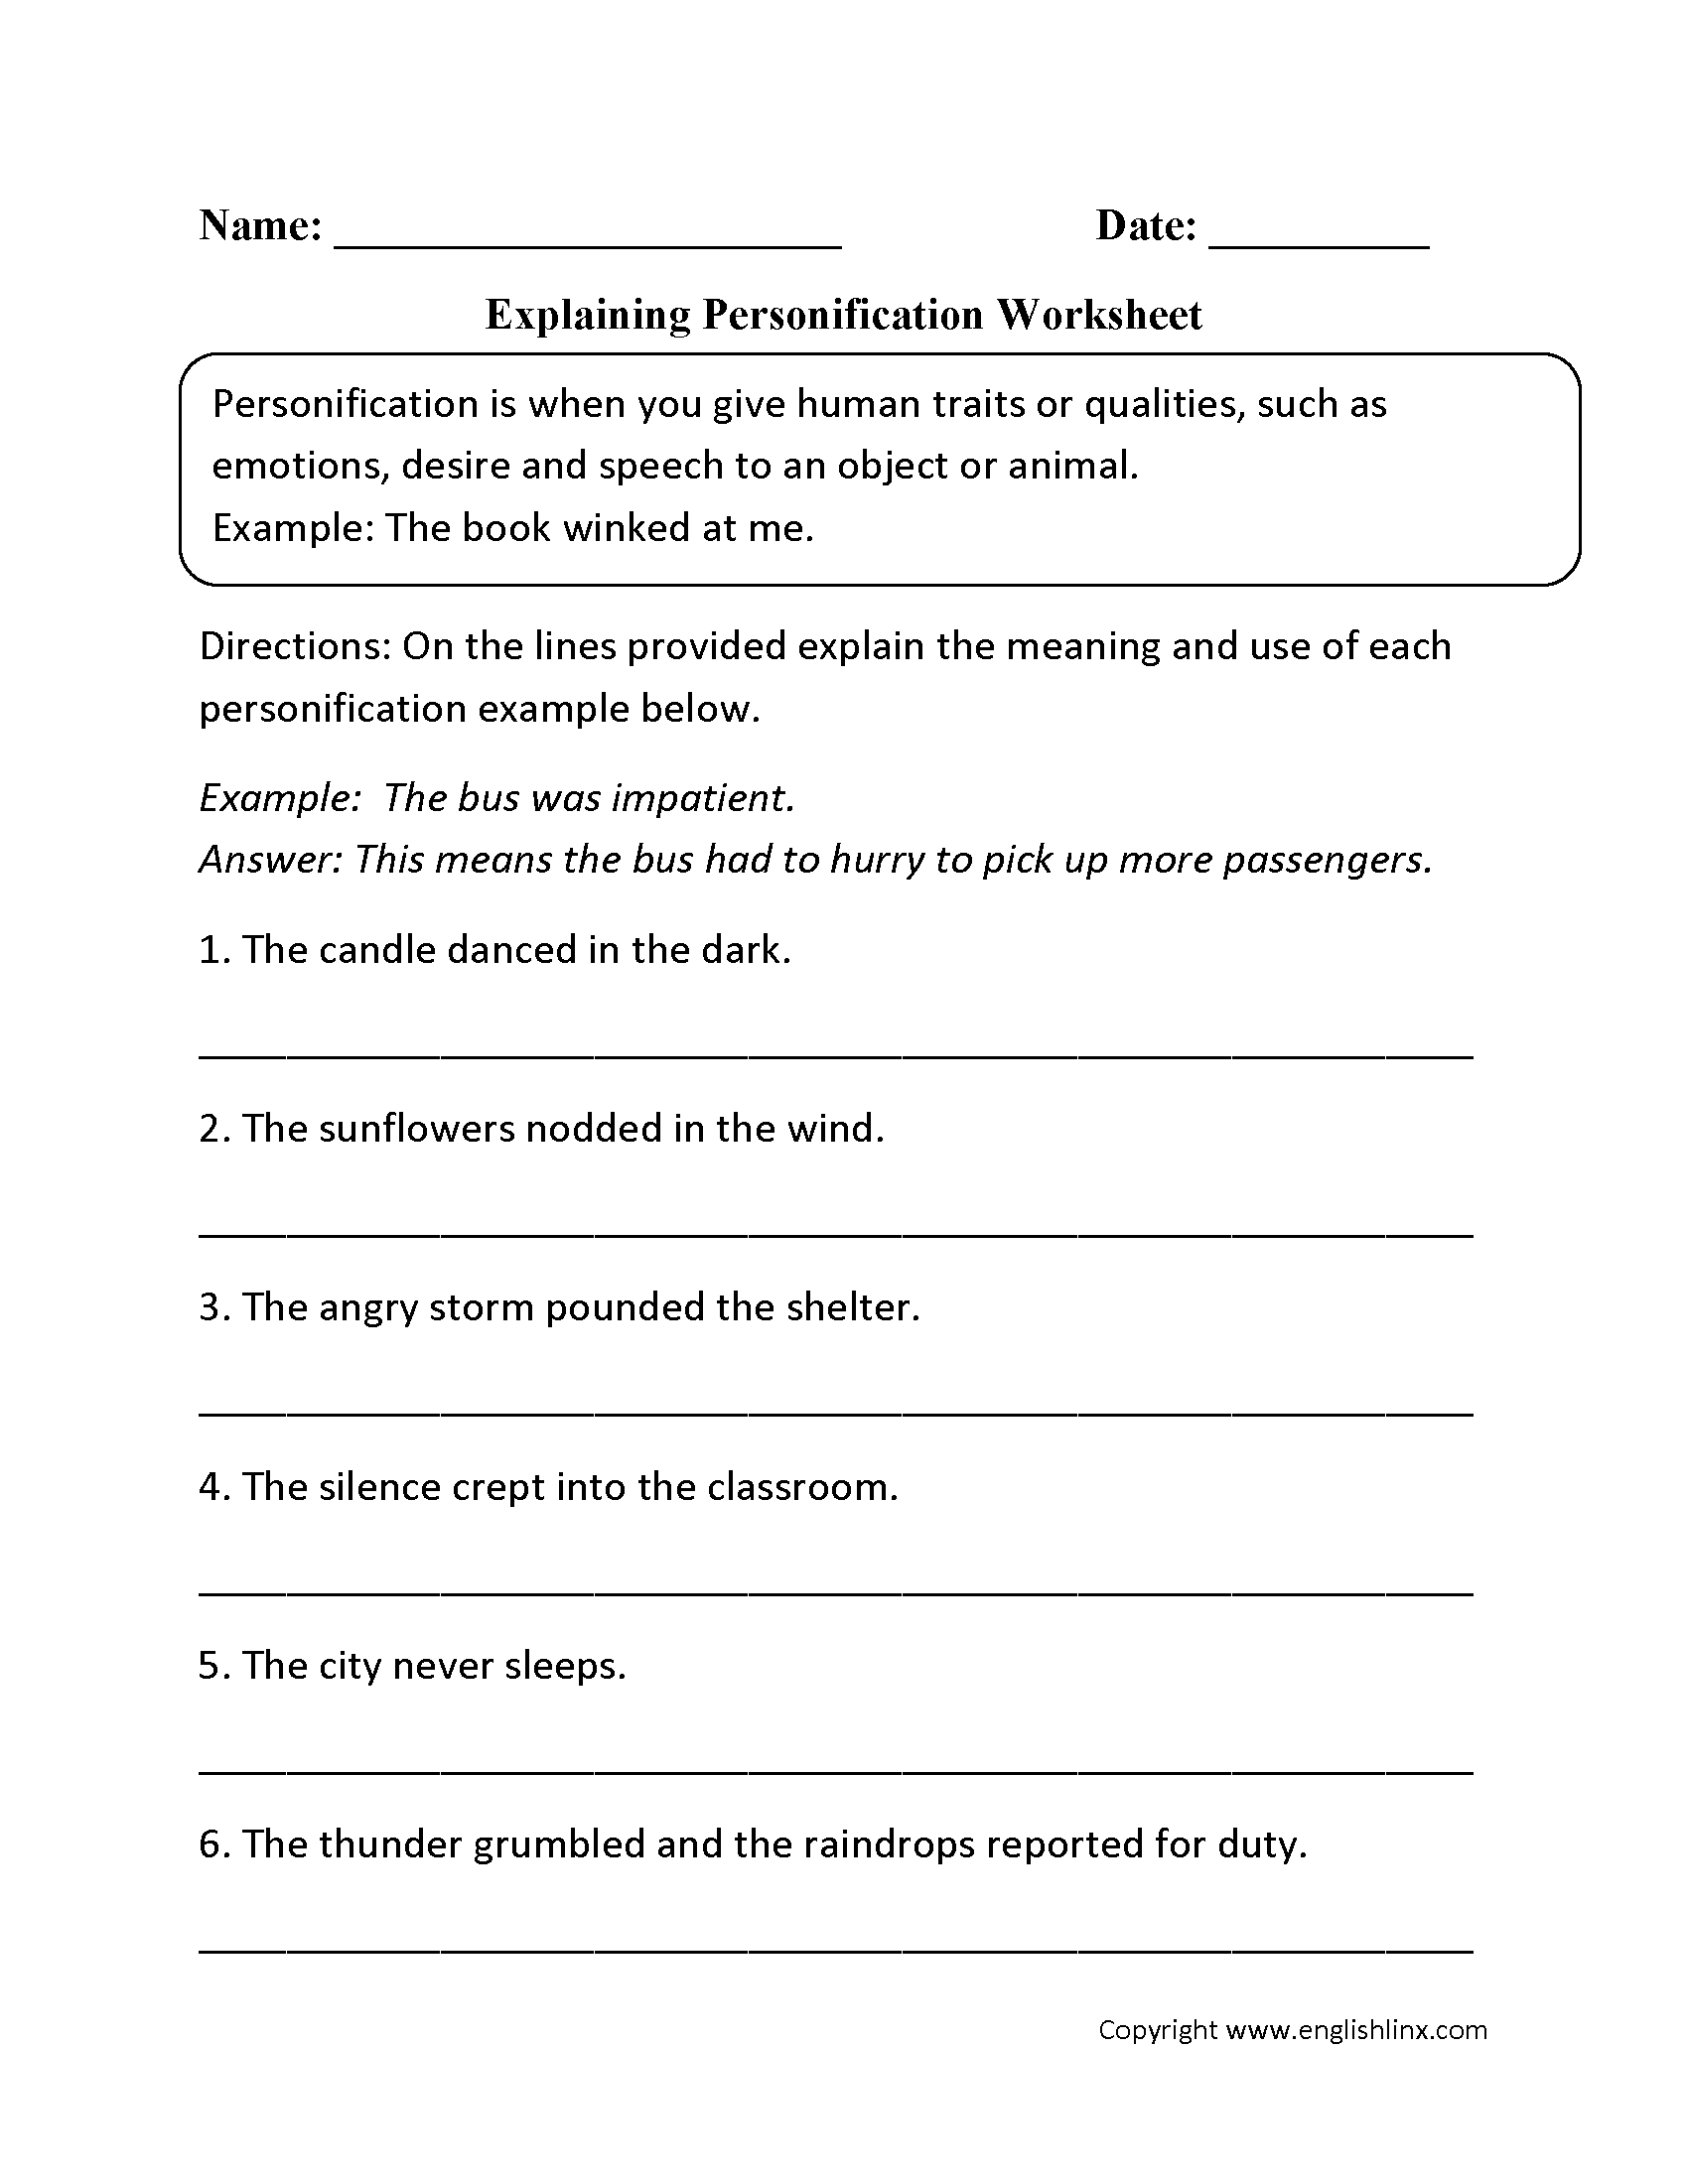 Personification Print Worksheets Images